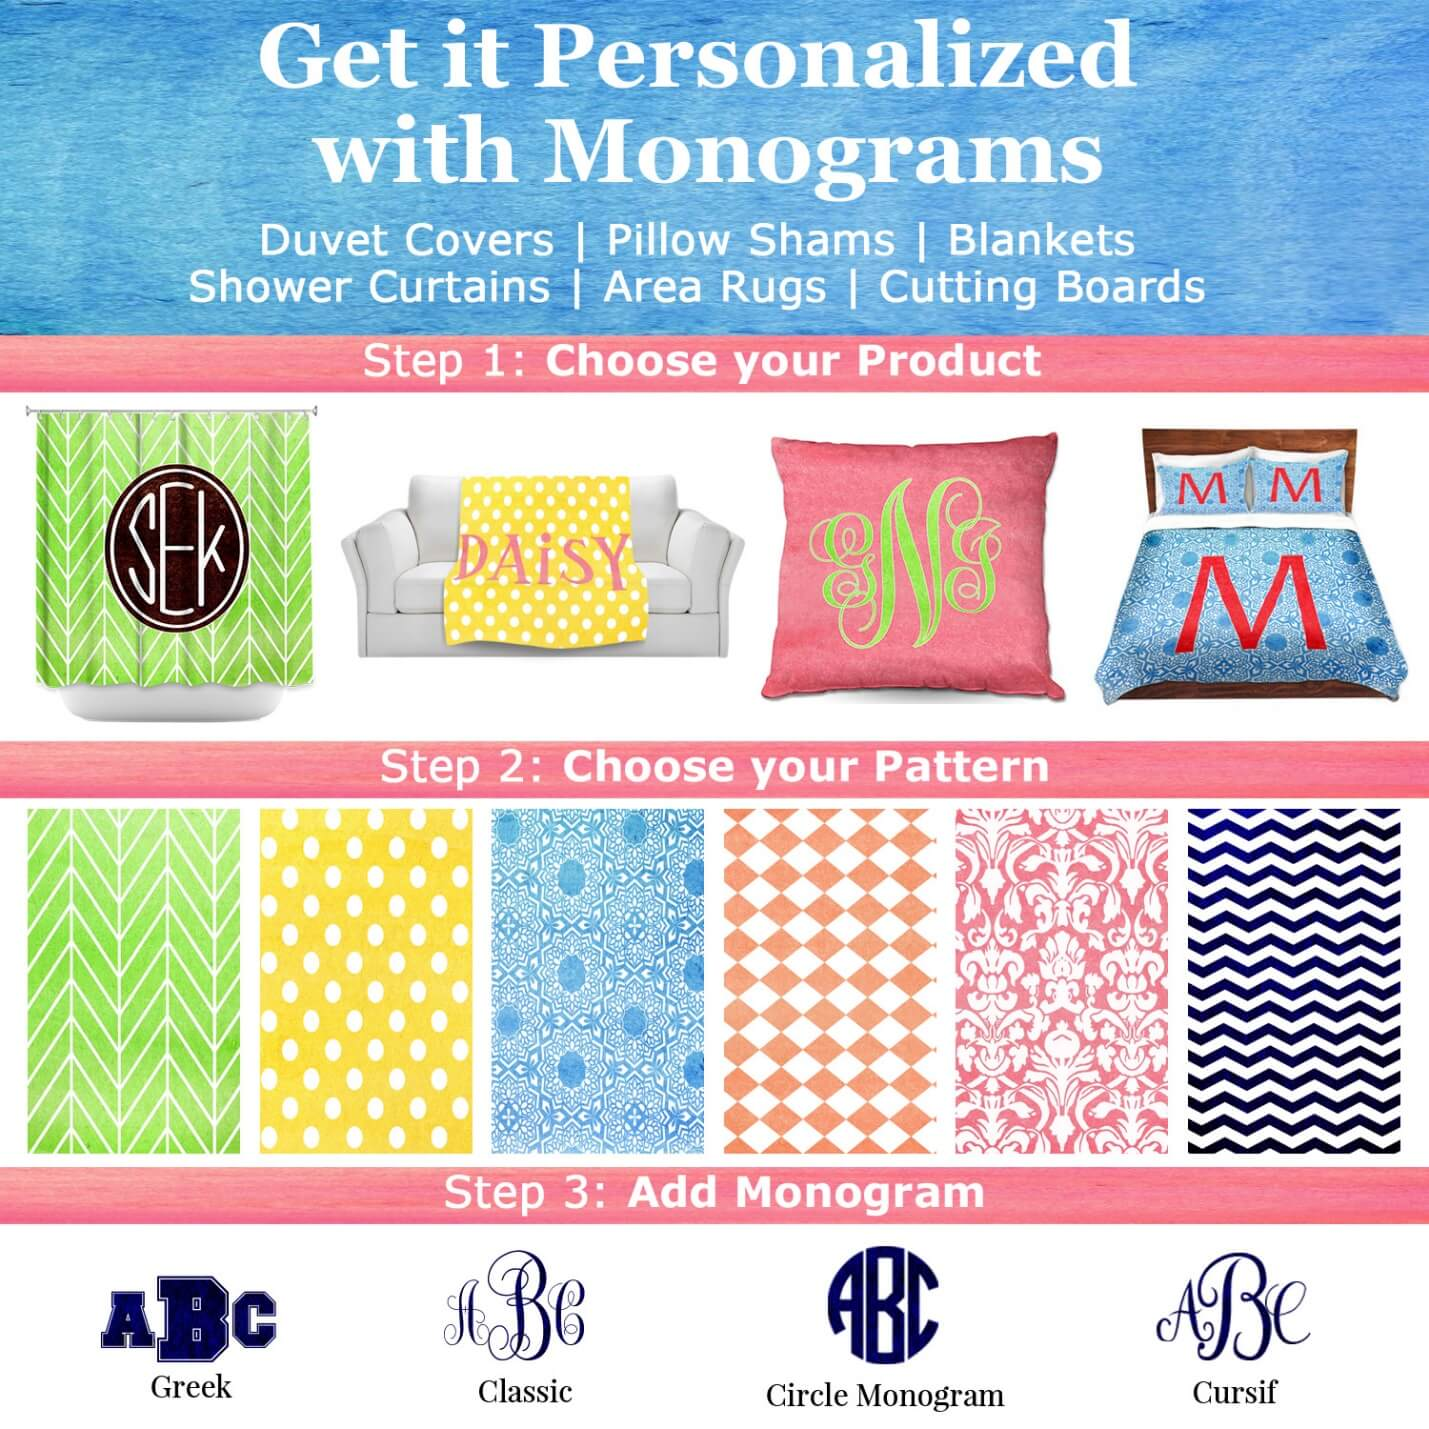 monogramed items available